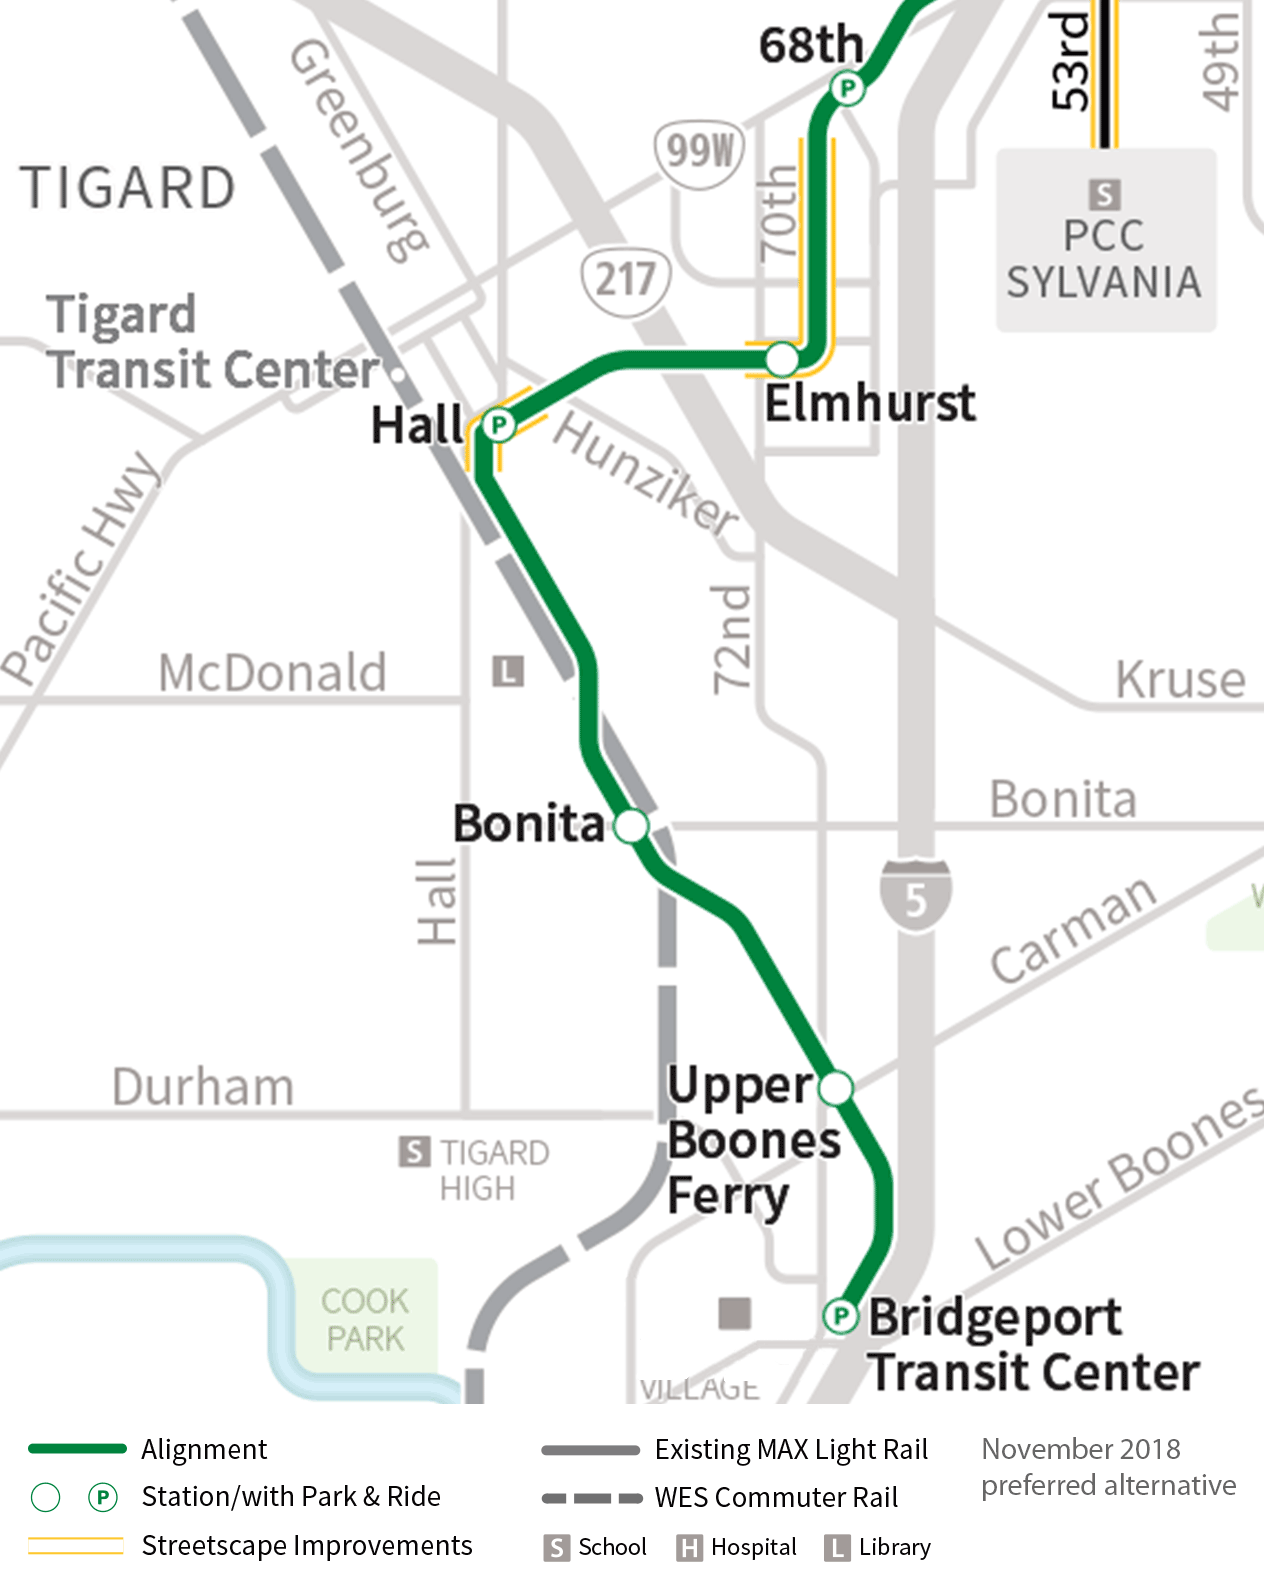 Tigard and Tualatin stations